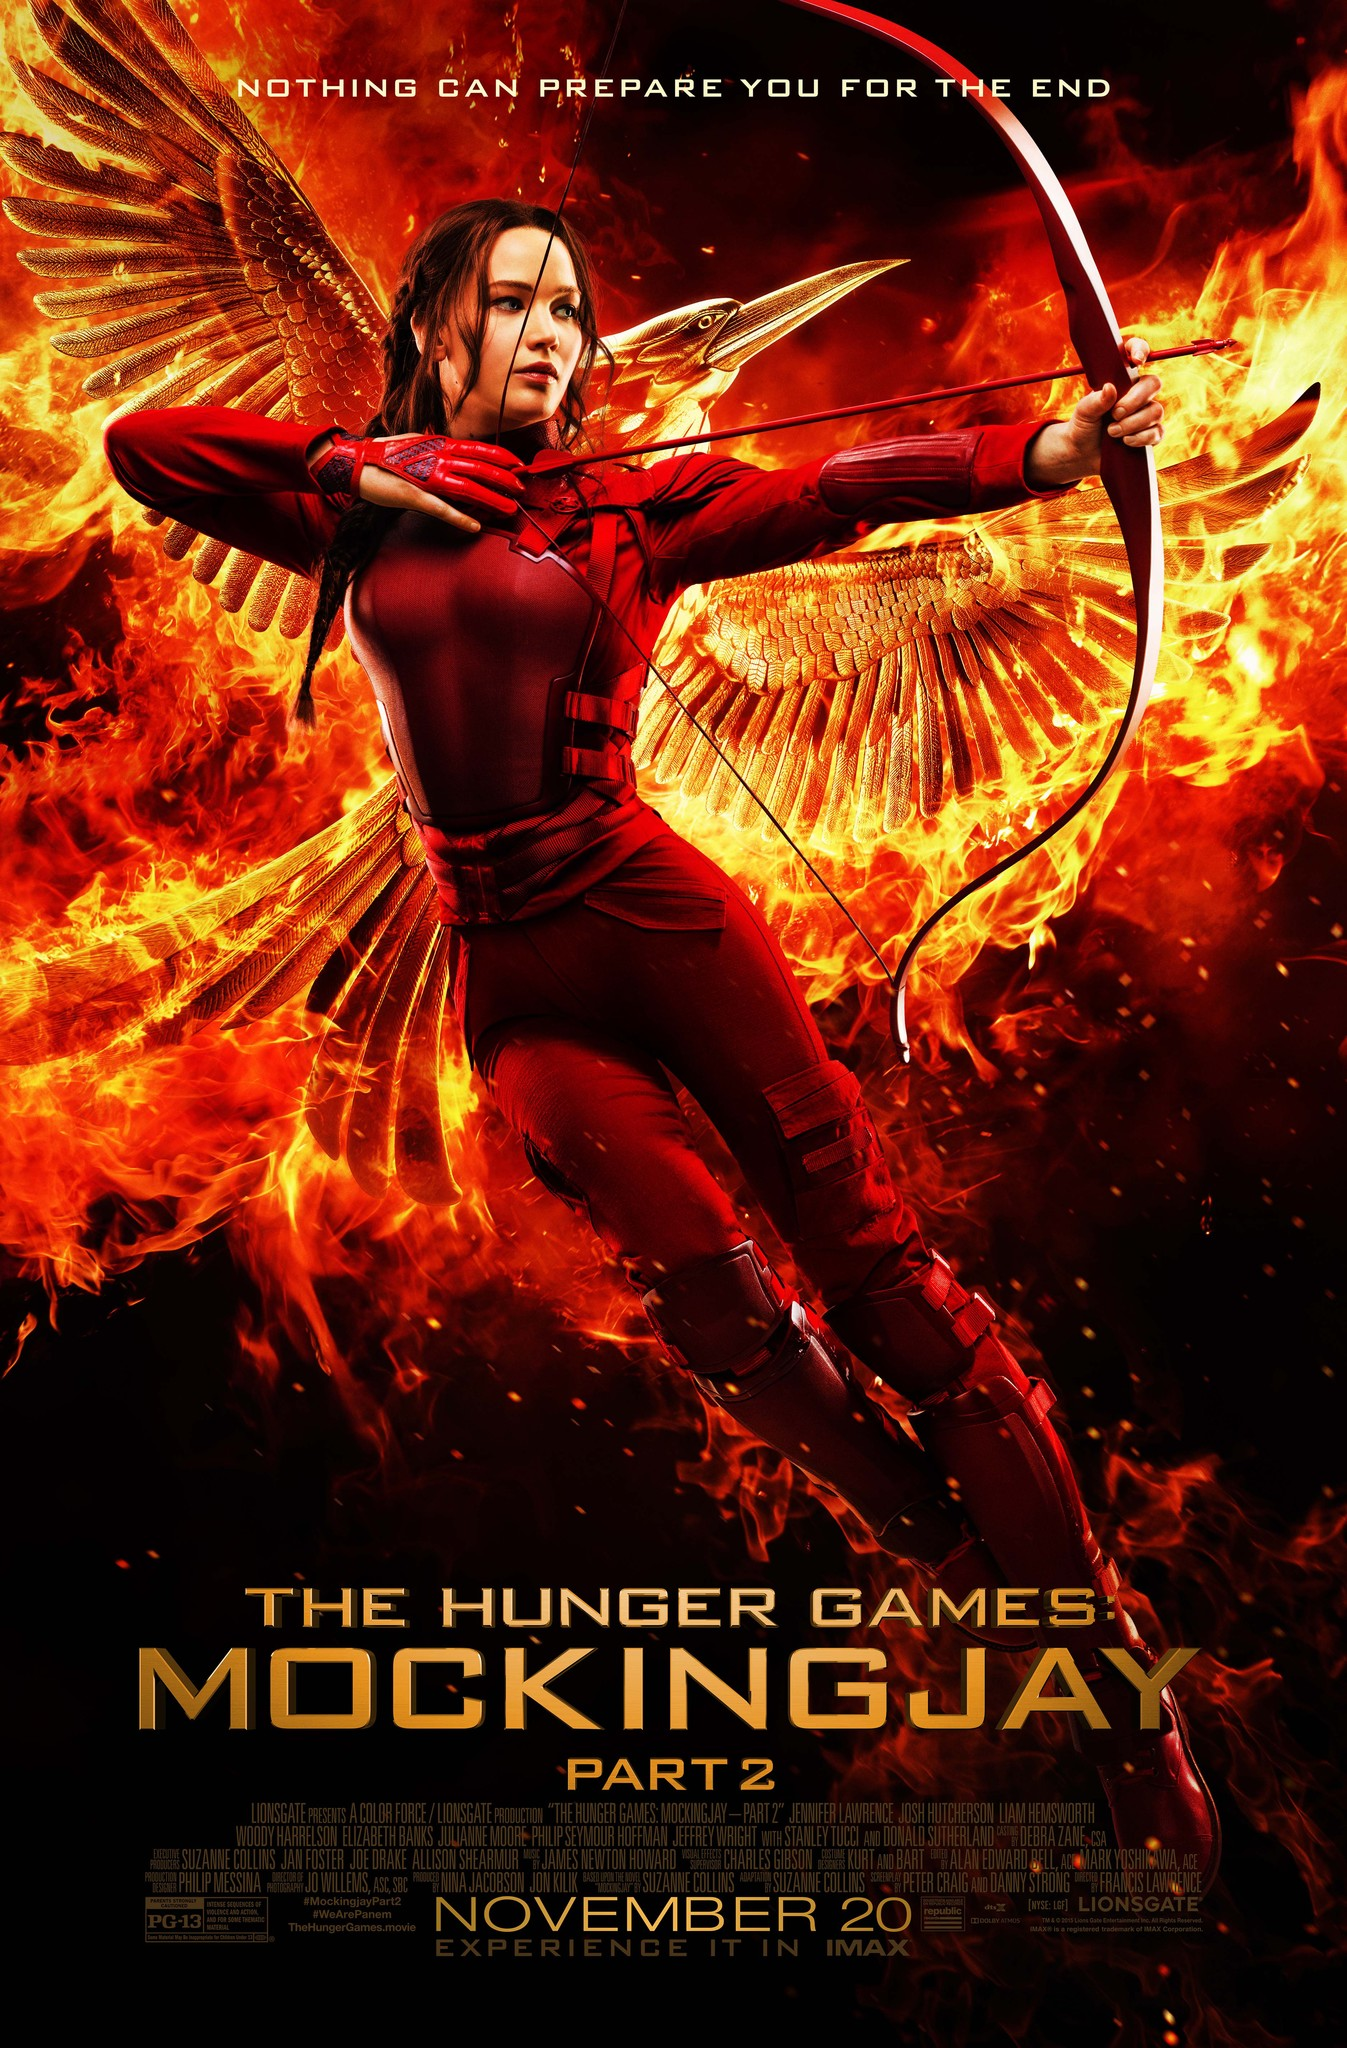 Indonesia games novel mockingjay hunger pdf bahasa the